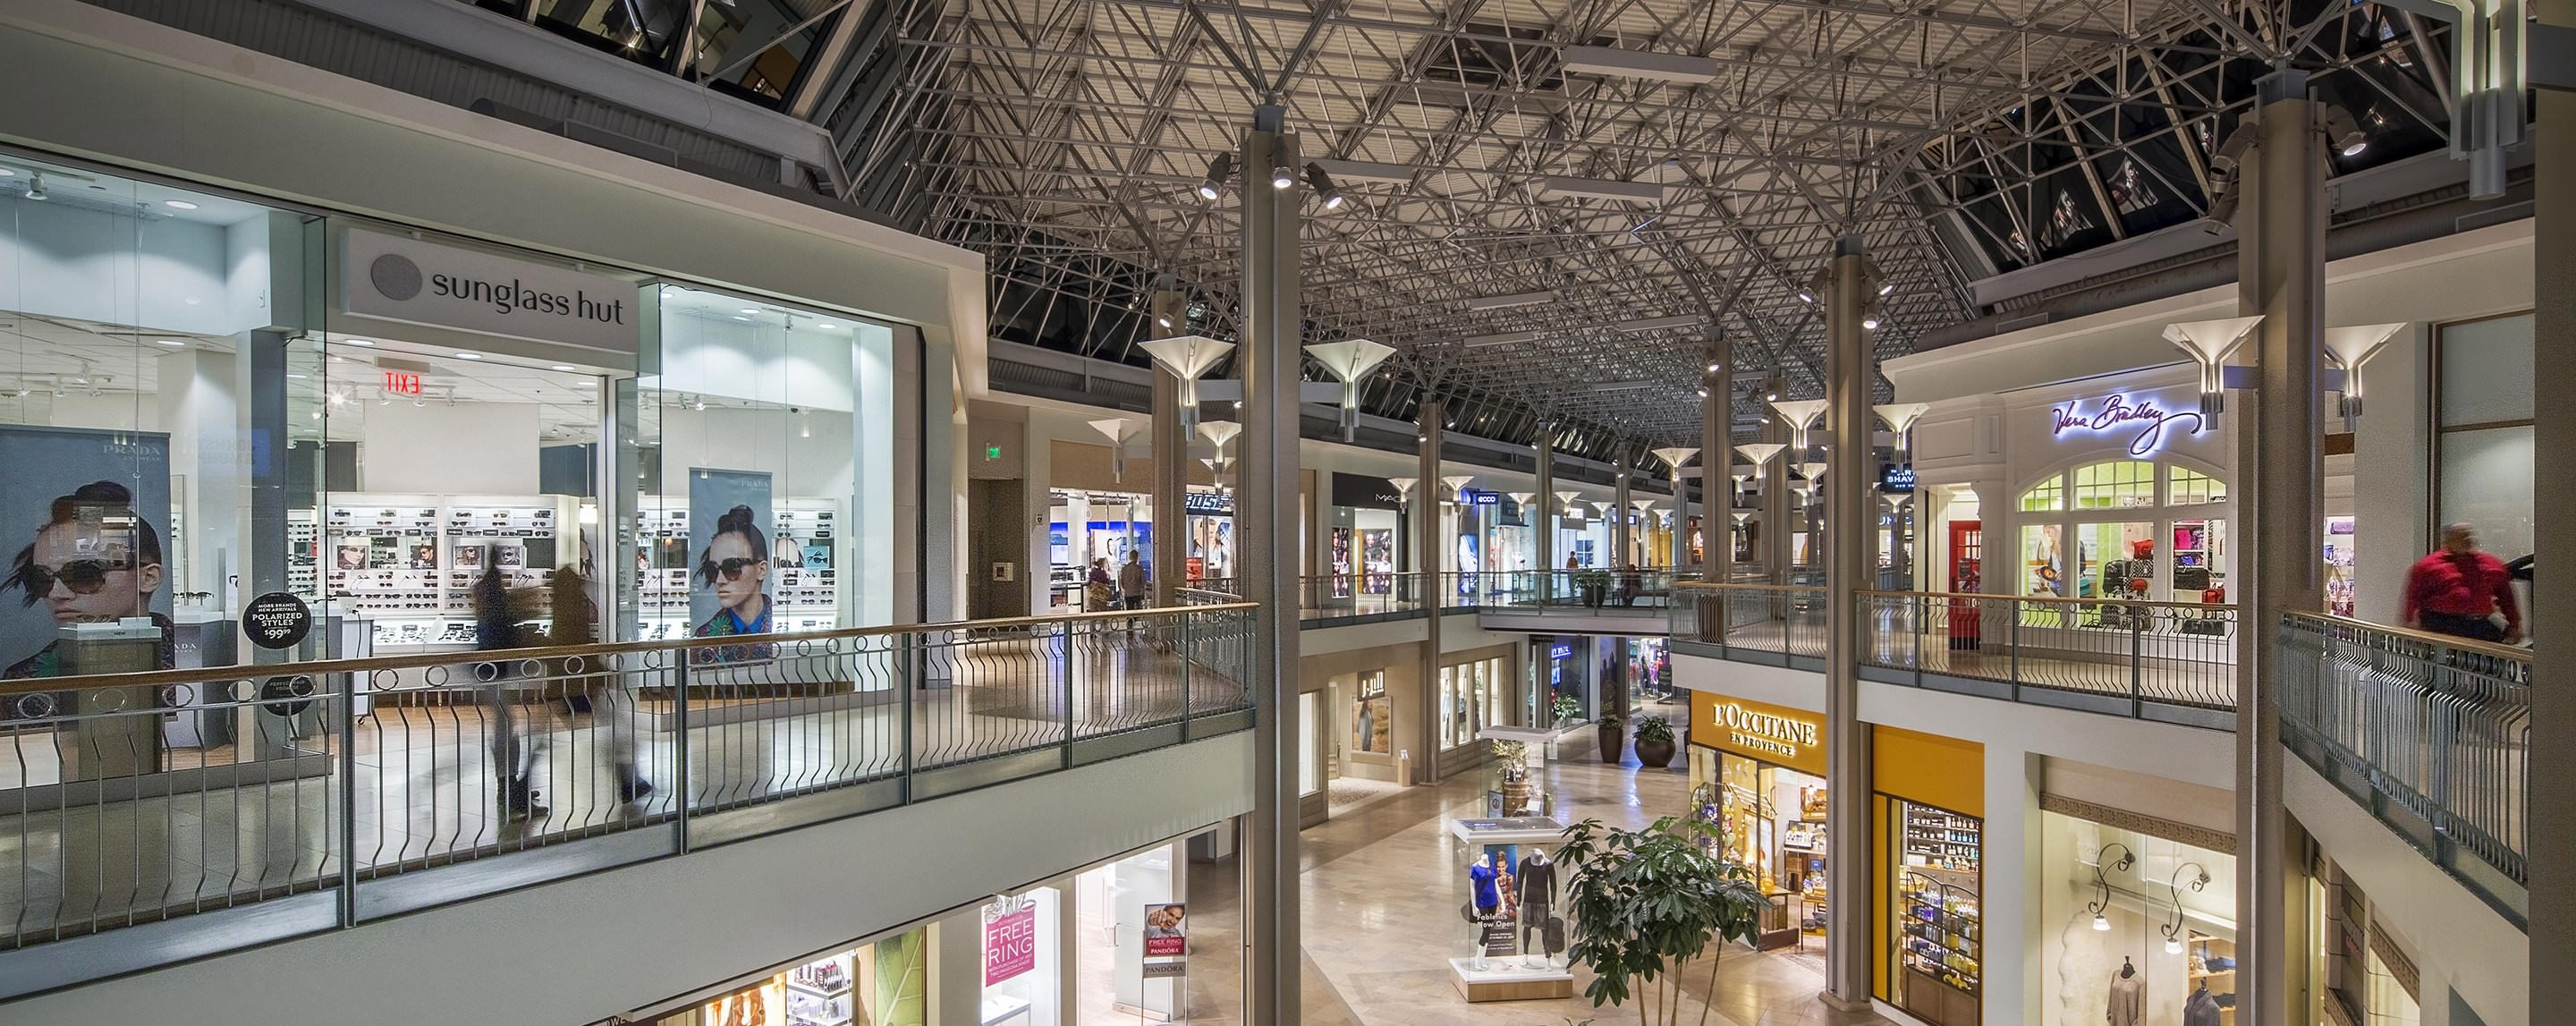 Shoppers walk along interior walkways alongside such stores as sunglass hut and Vera Bradley at The Mall in Columbia.